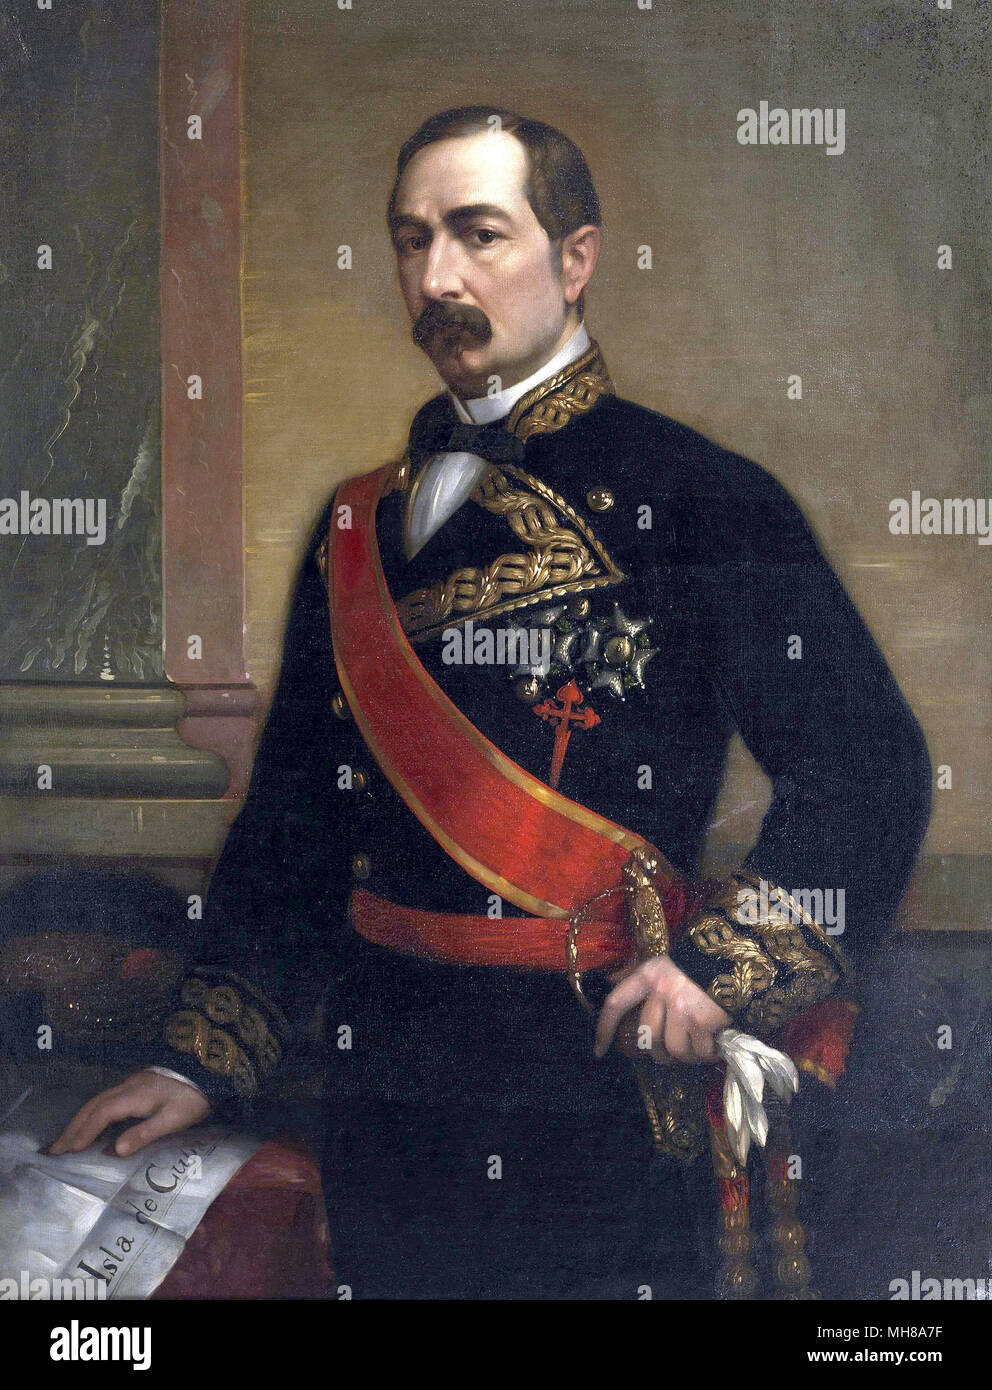 José Gutiérrez De la Concha, 1st Marquis of Havana, 1st Viscount of Cuba, Grandee of Spain (1809 – 1895) Spanish noble, general and politician, who served once as the Prime Minister of Spain. - Stock Image